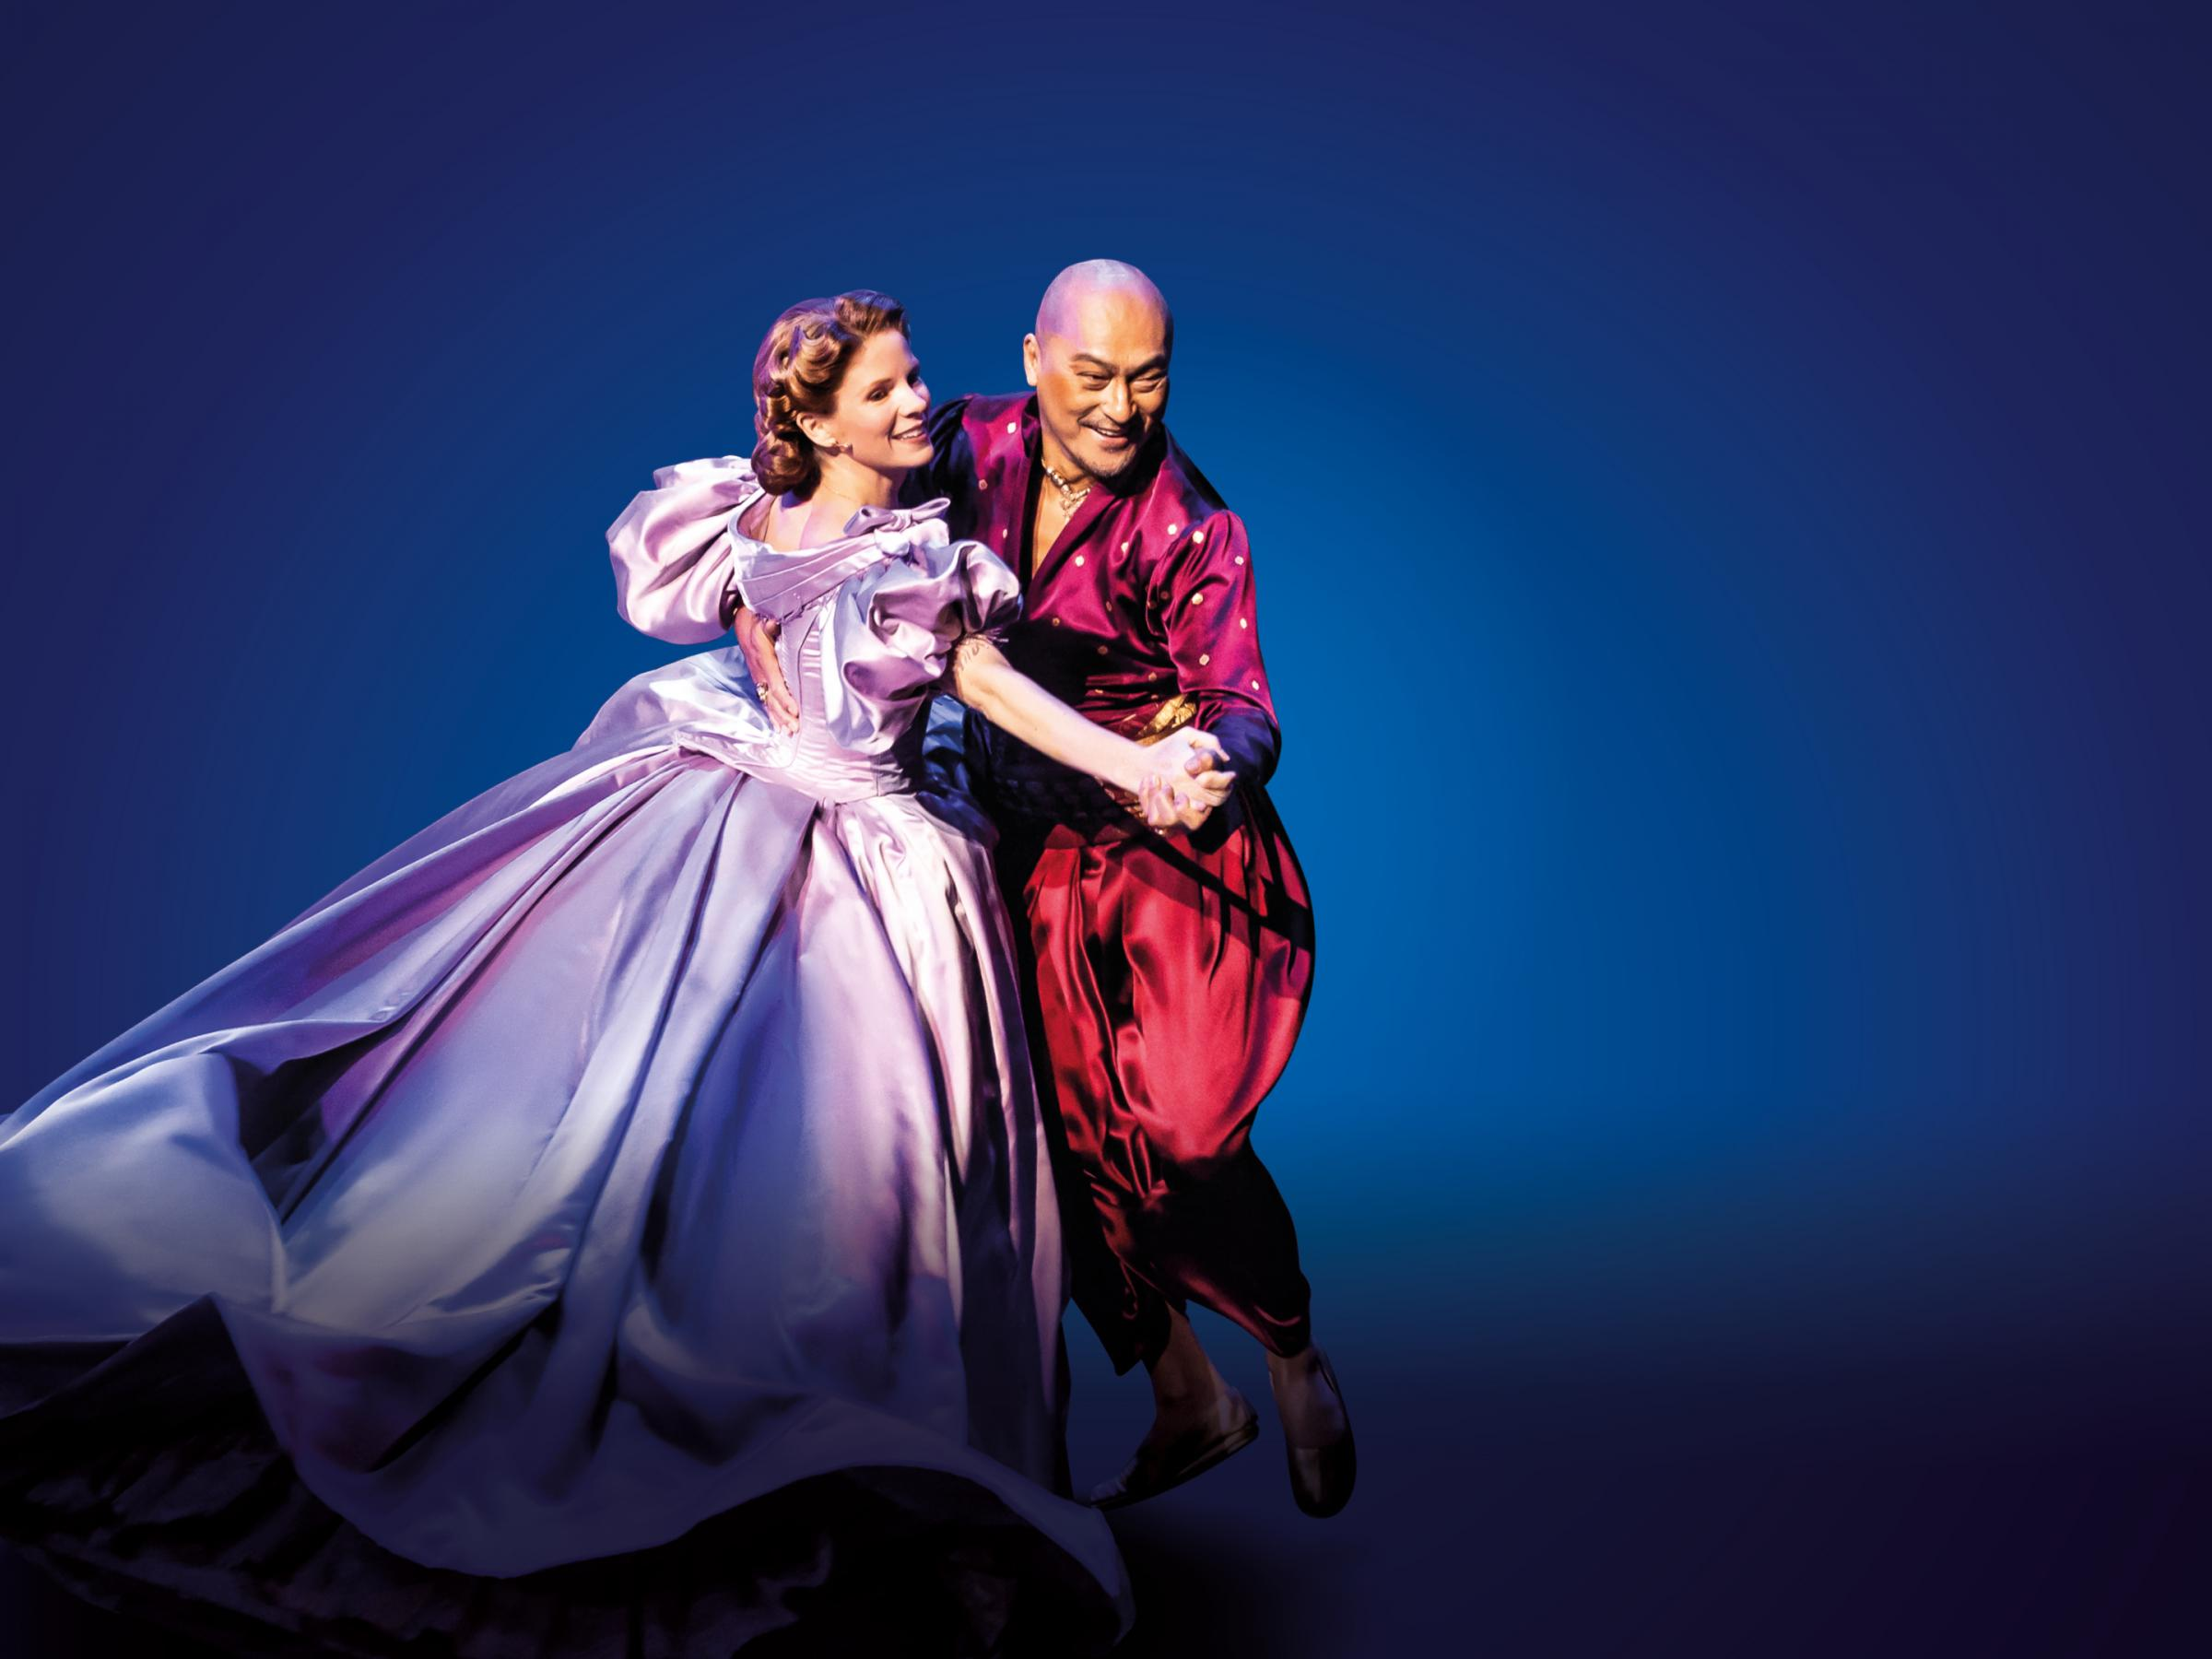 LIVE SCREENING: The King and I will be screened at the 1912 Centre